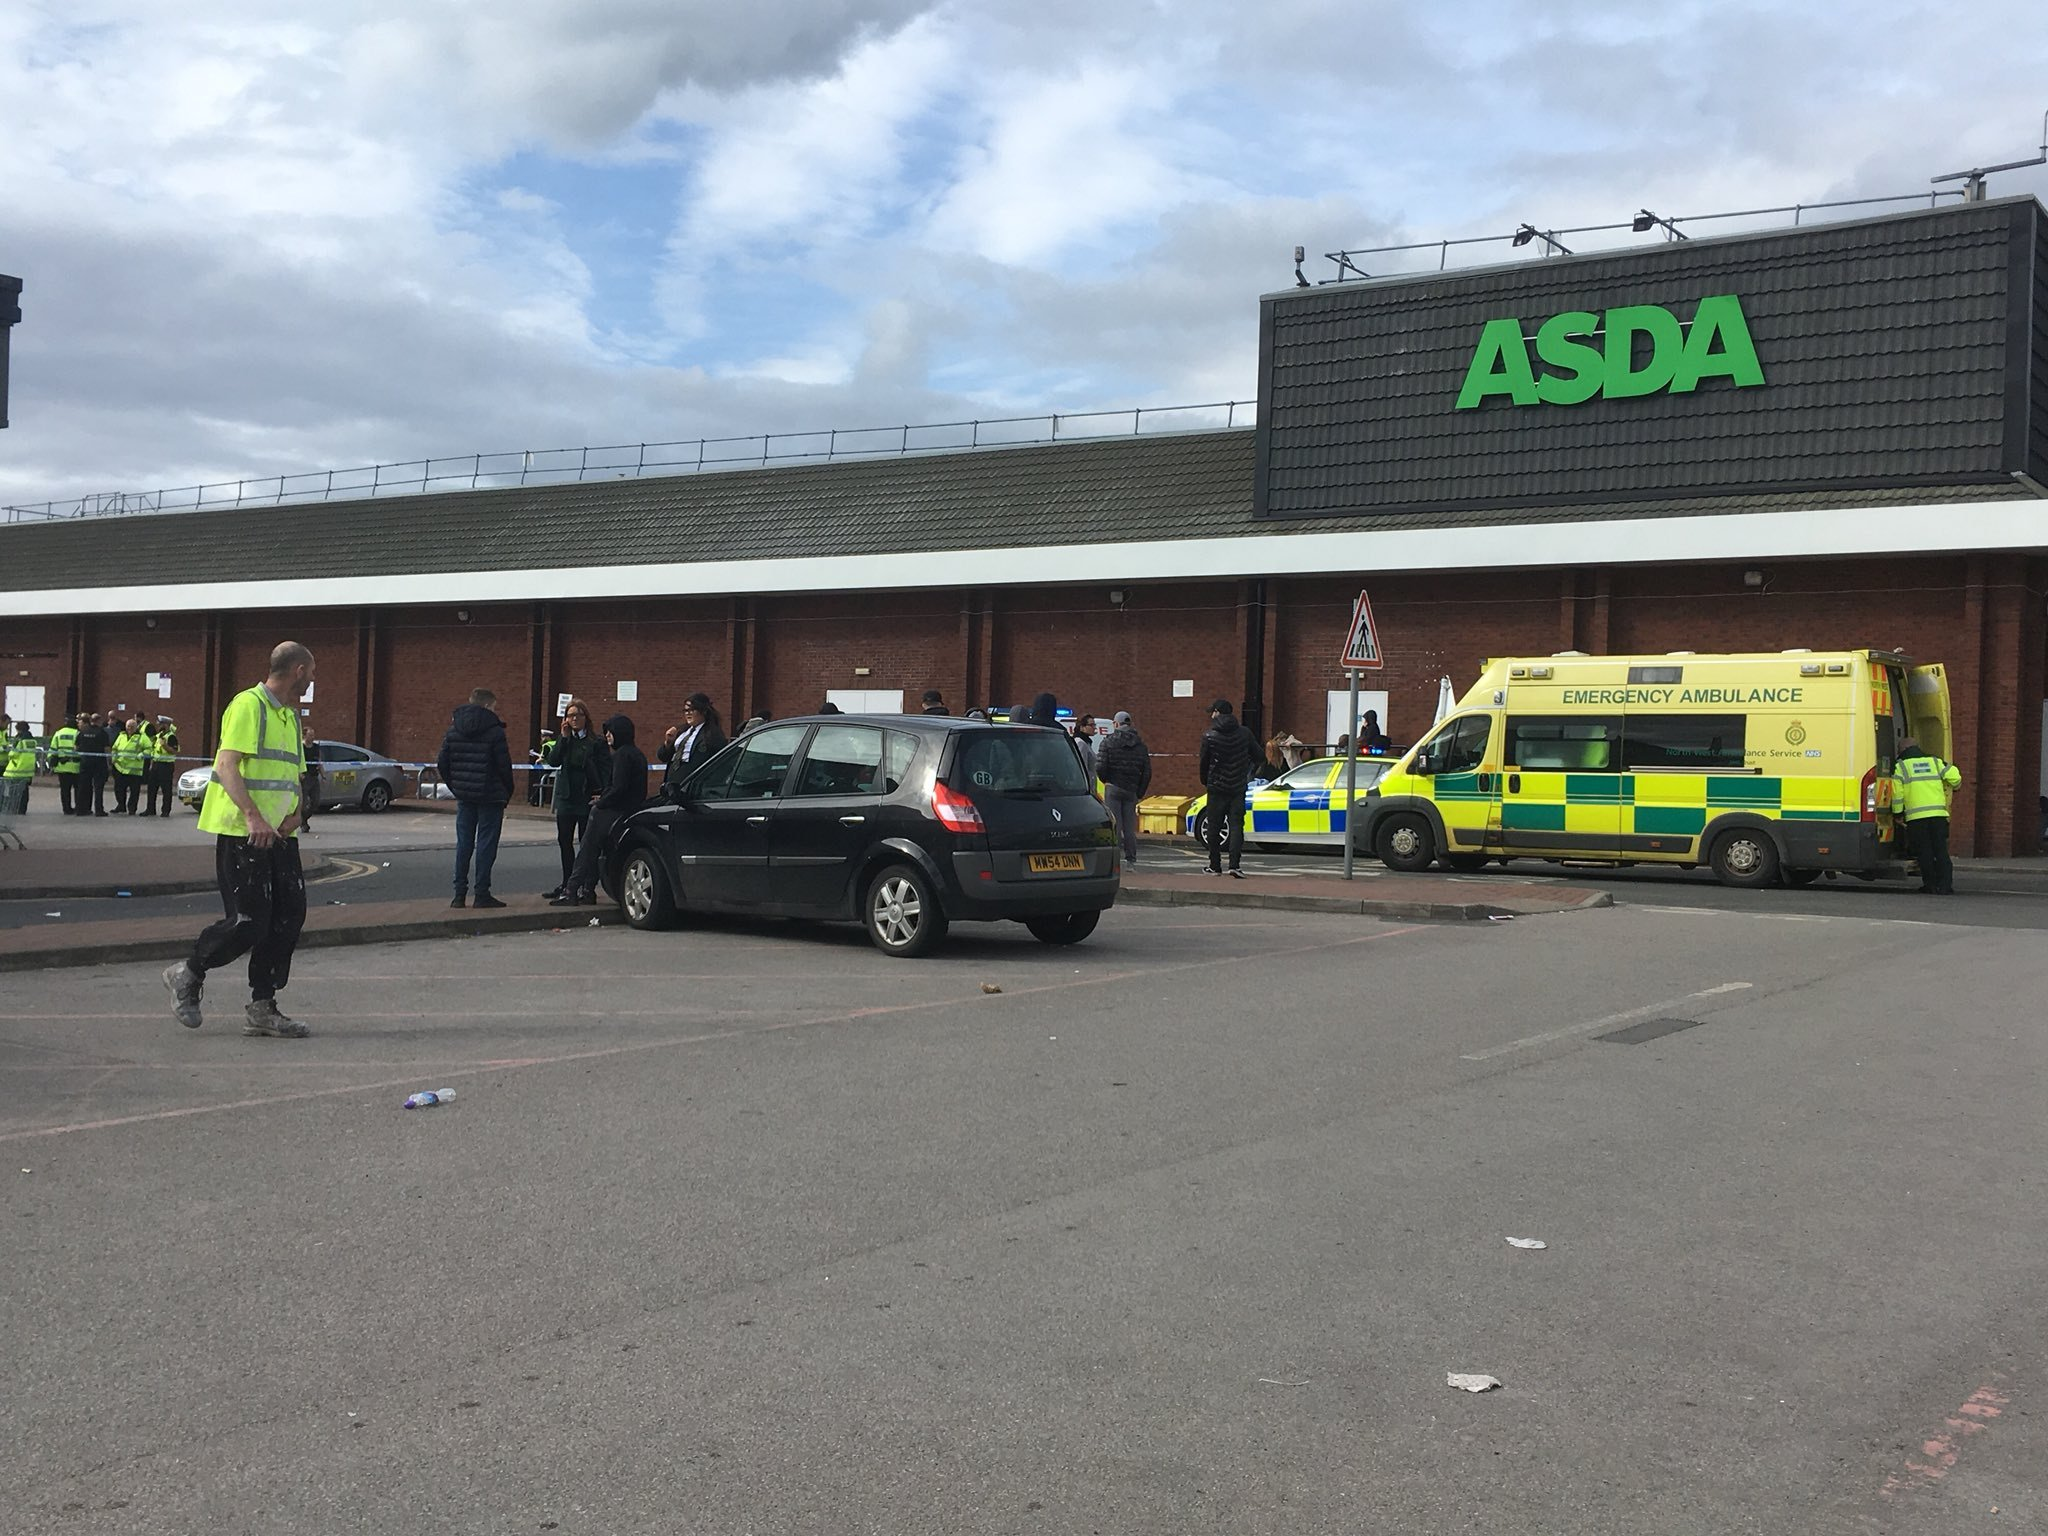 Six people have been injured after a car was driven into a crowd of people at a shopping centre in north Manchester. Emergency services were called to the Asda at Harpurhey shopping centre just before 3.30pm today (Monday). Caption: Emergency services at scene